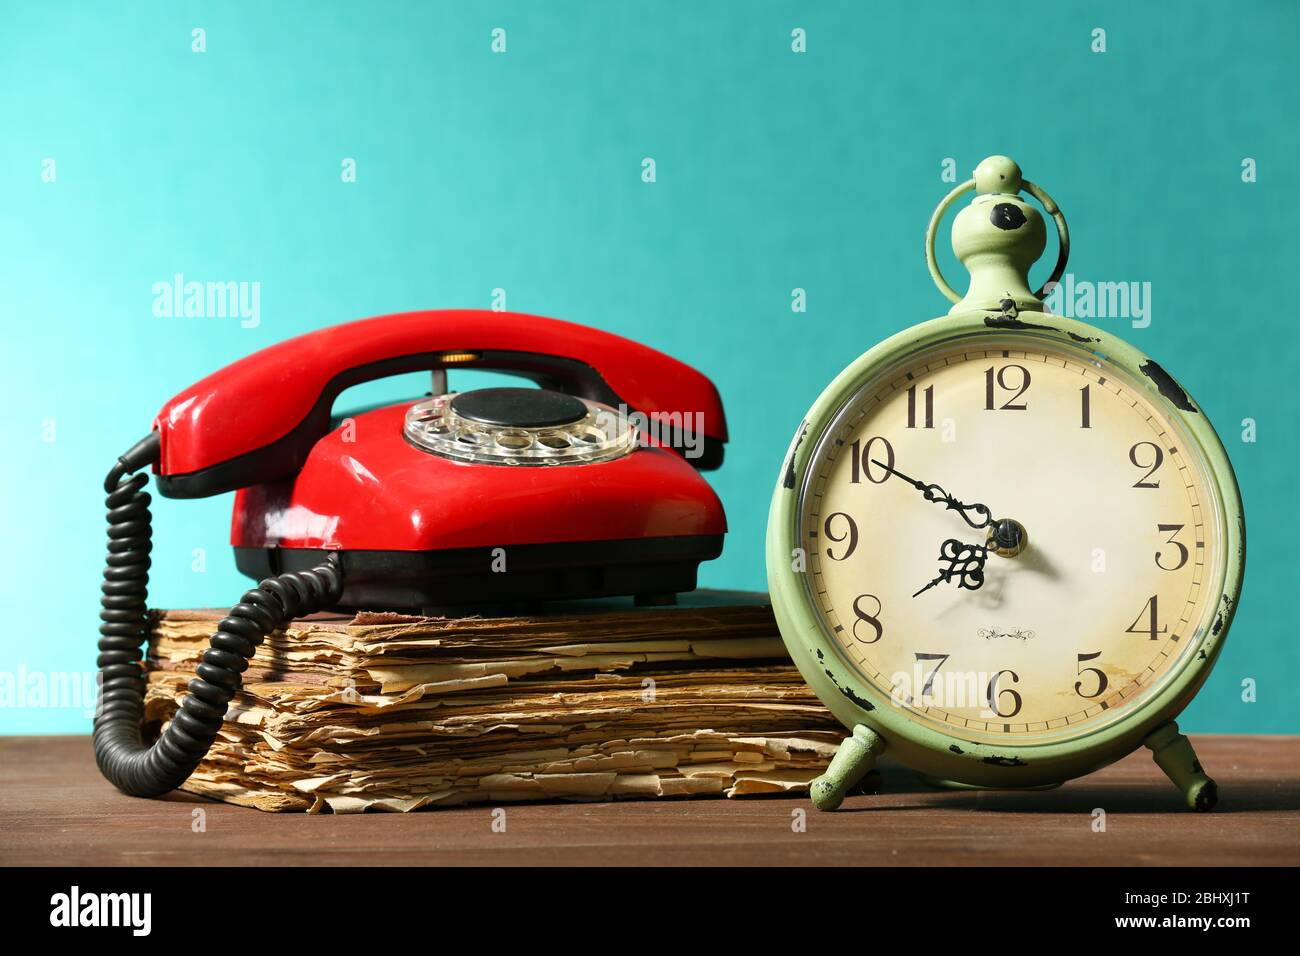 Retro Clock With Old Book And Telephone On Table On Green Background Stock Photo Alamy